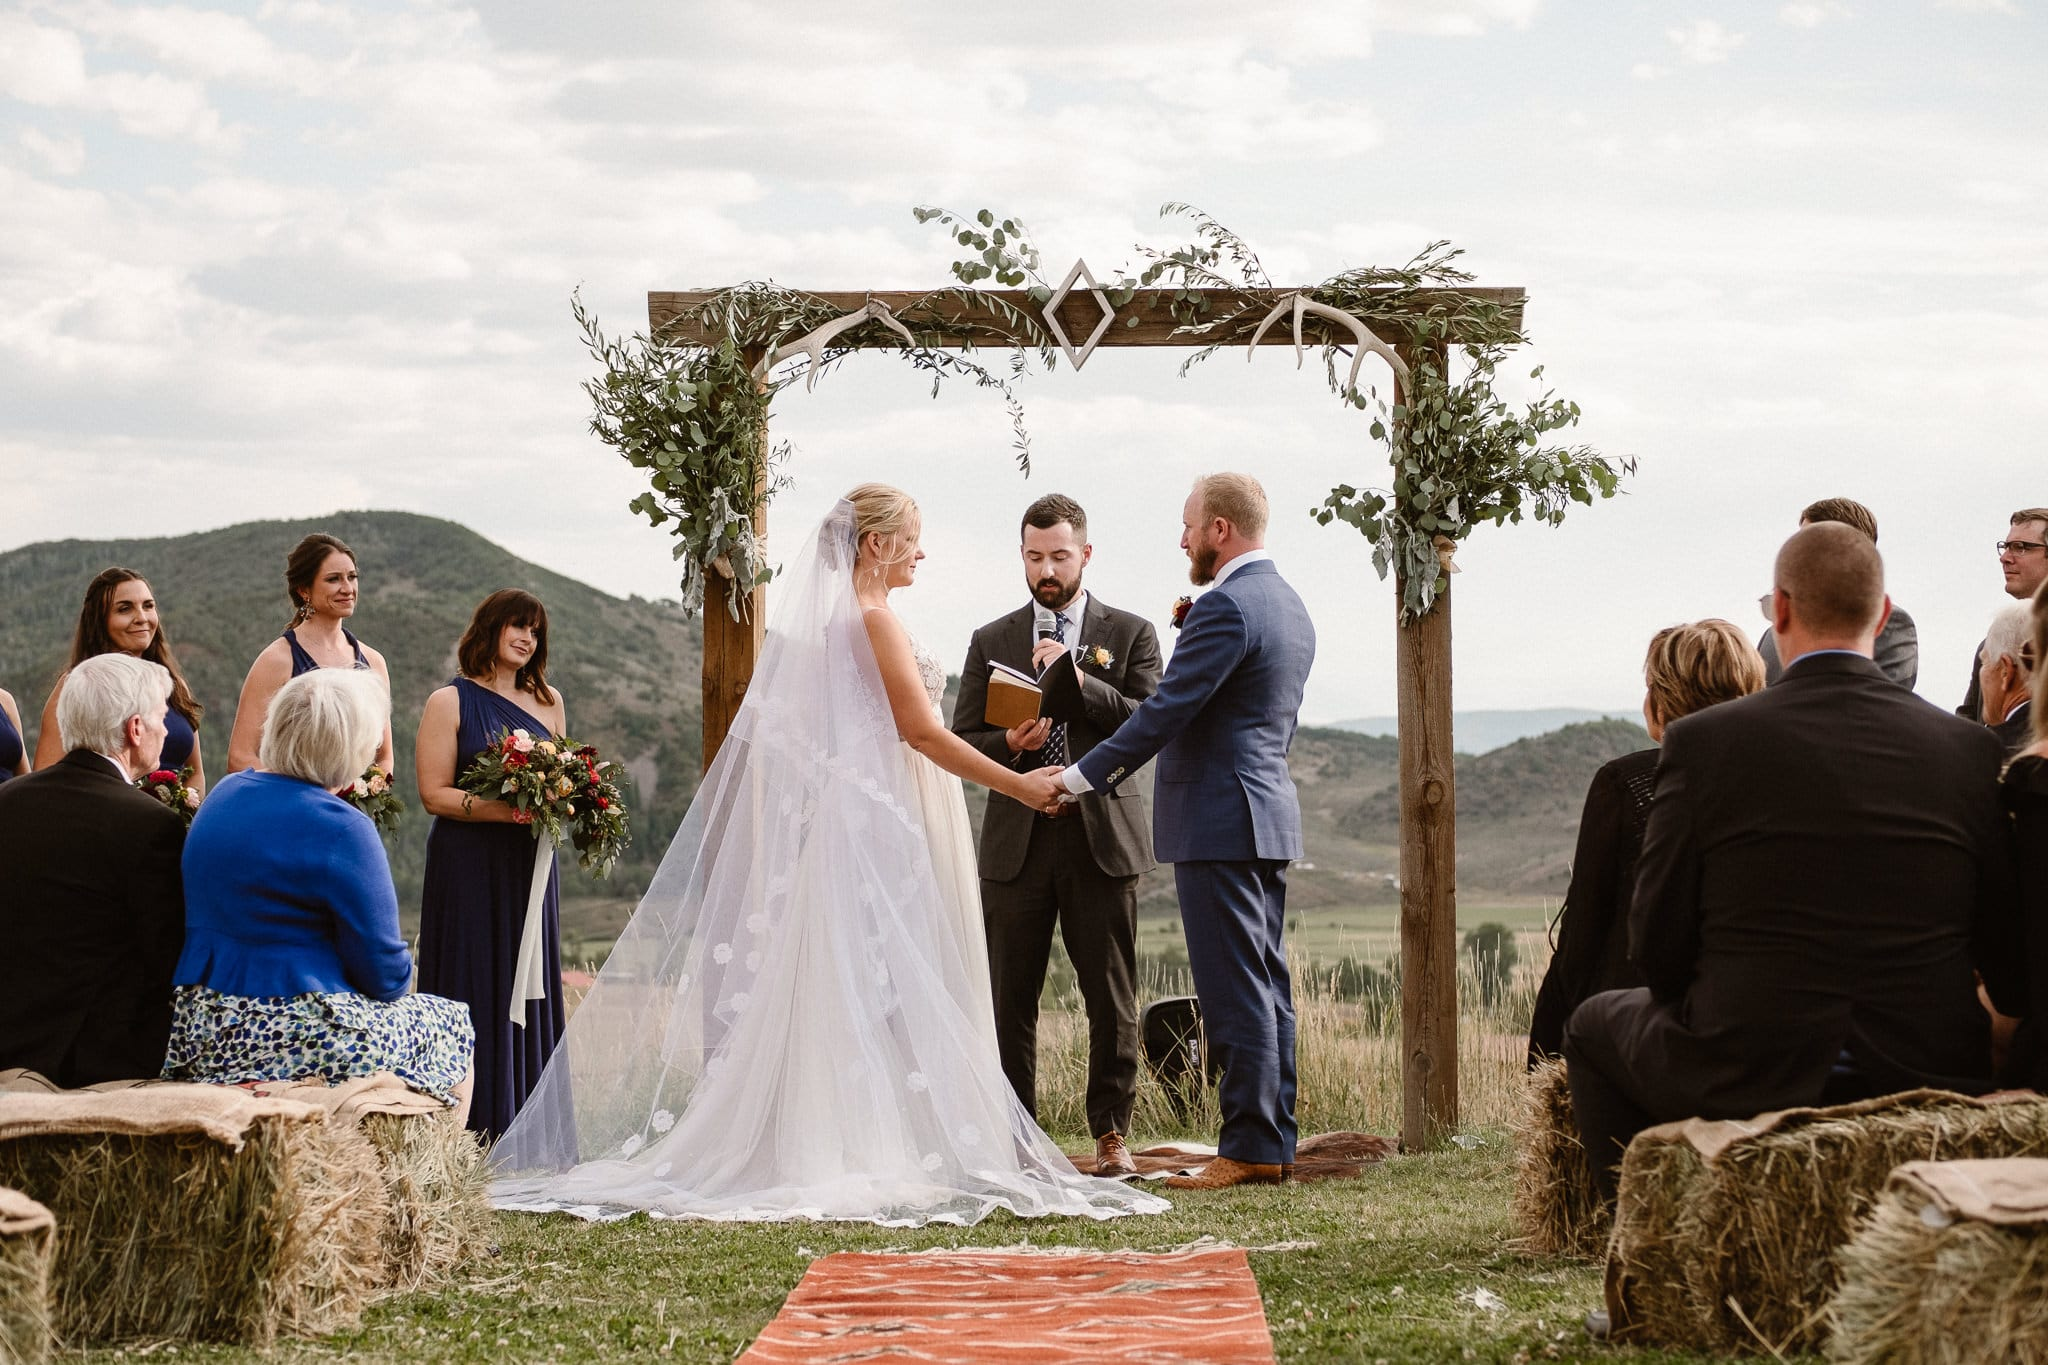 Steamboat Springs wedding photographer, La Joya Dulce wedding, Colorado ranch wedding venues, outdoor wedding ceremony, bridesmaids watching wedding ceremony, bride and groom holding hands